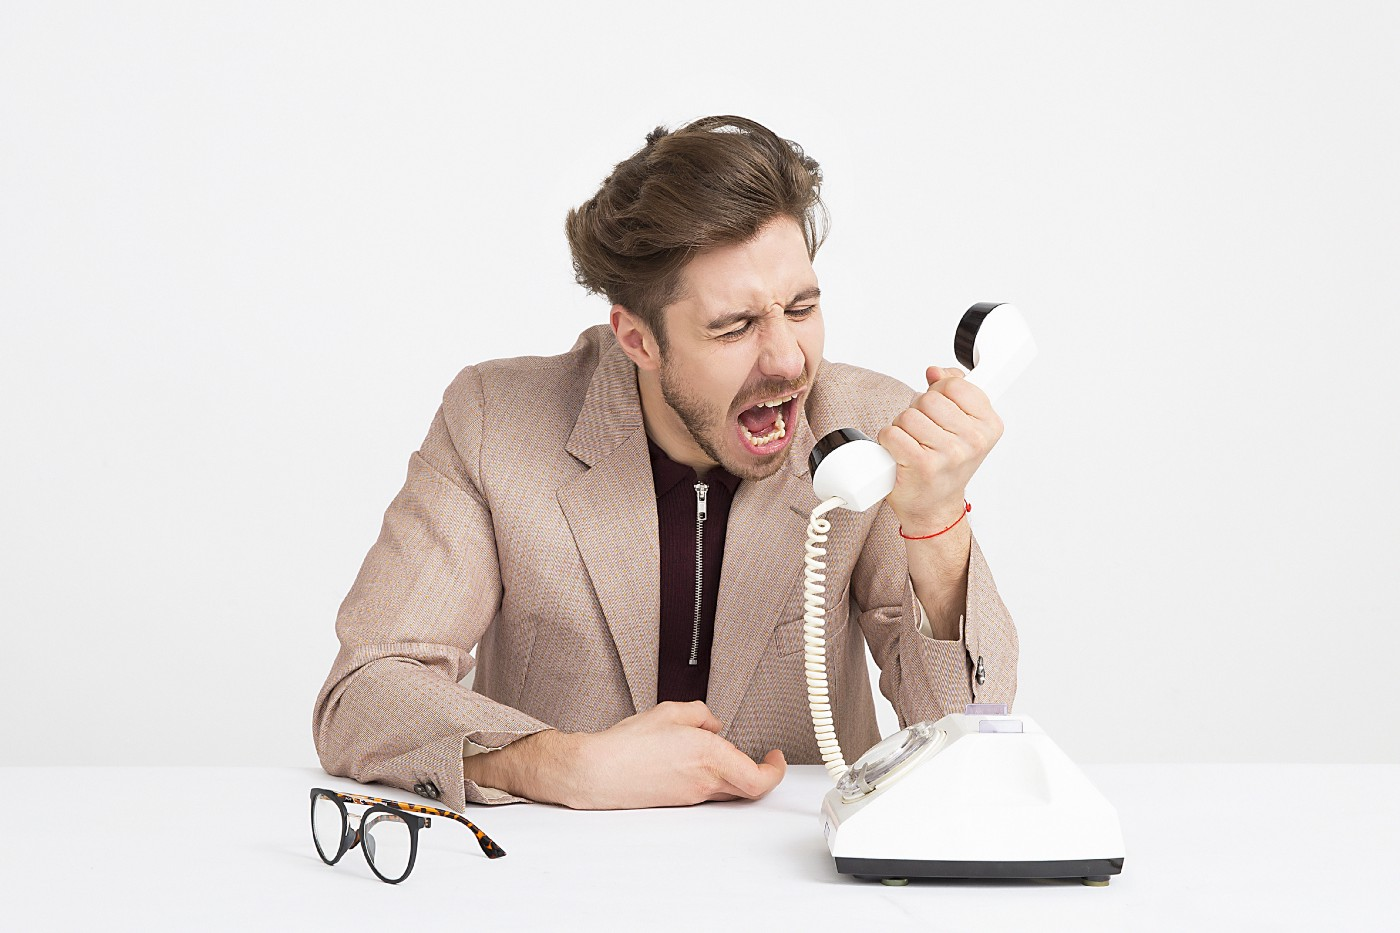 man shouting into telephone